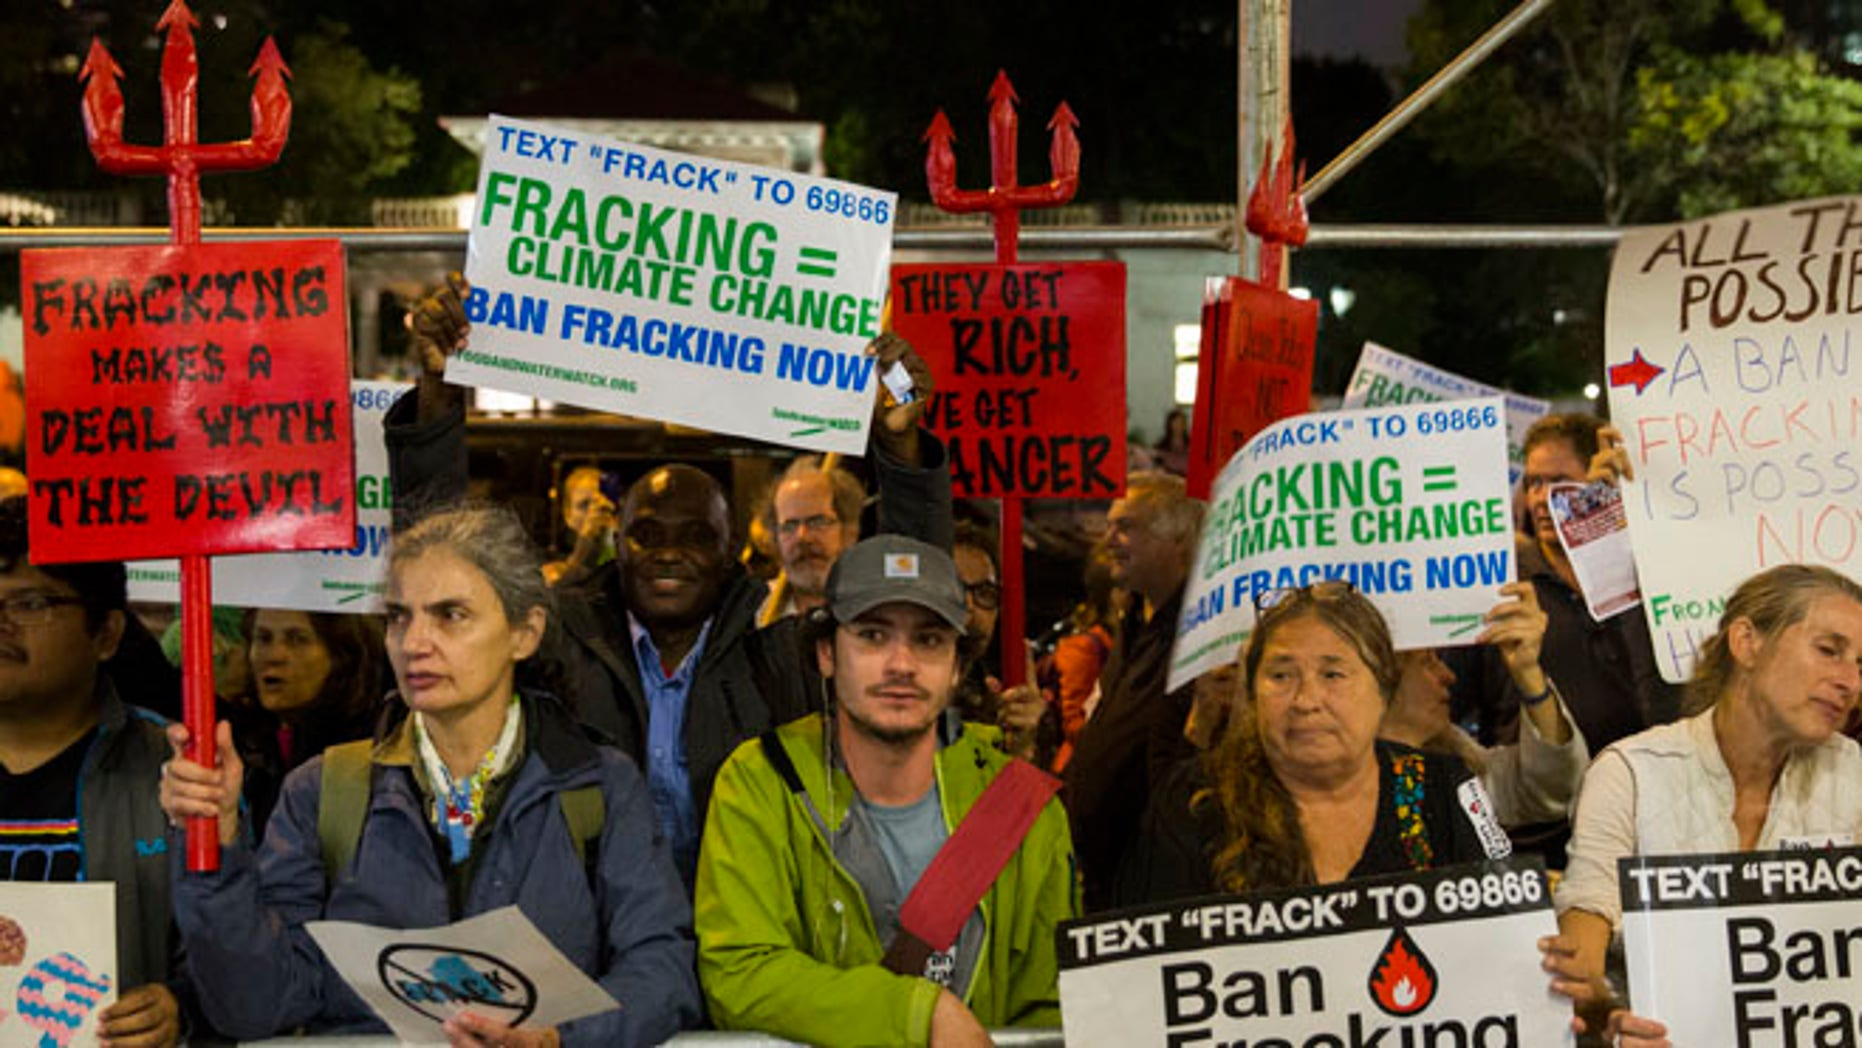 Oct. 14, 2014: Protesters demonstrate against fracking in New York.